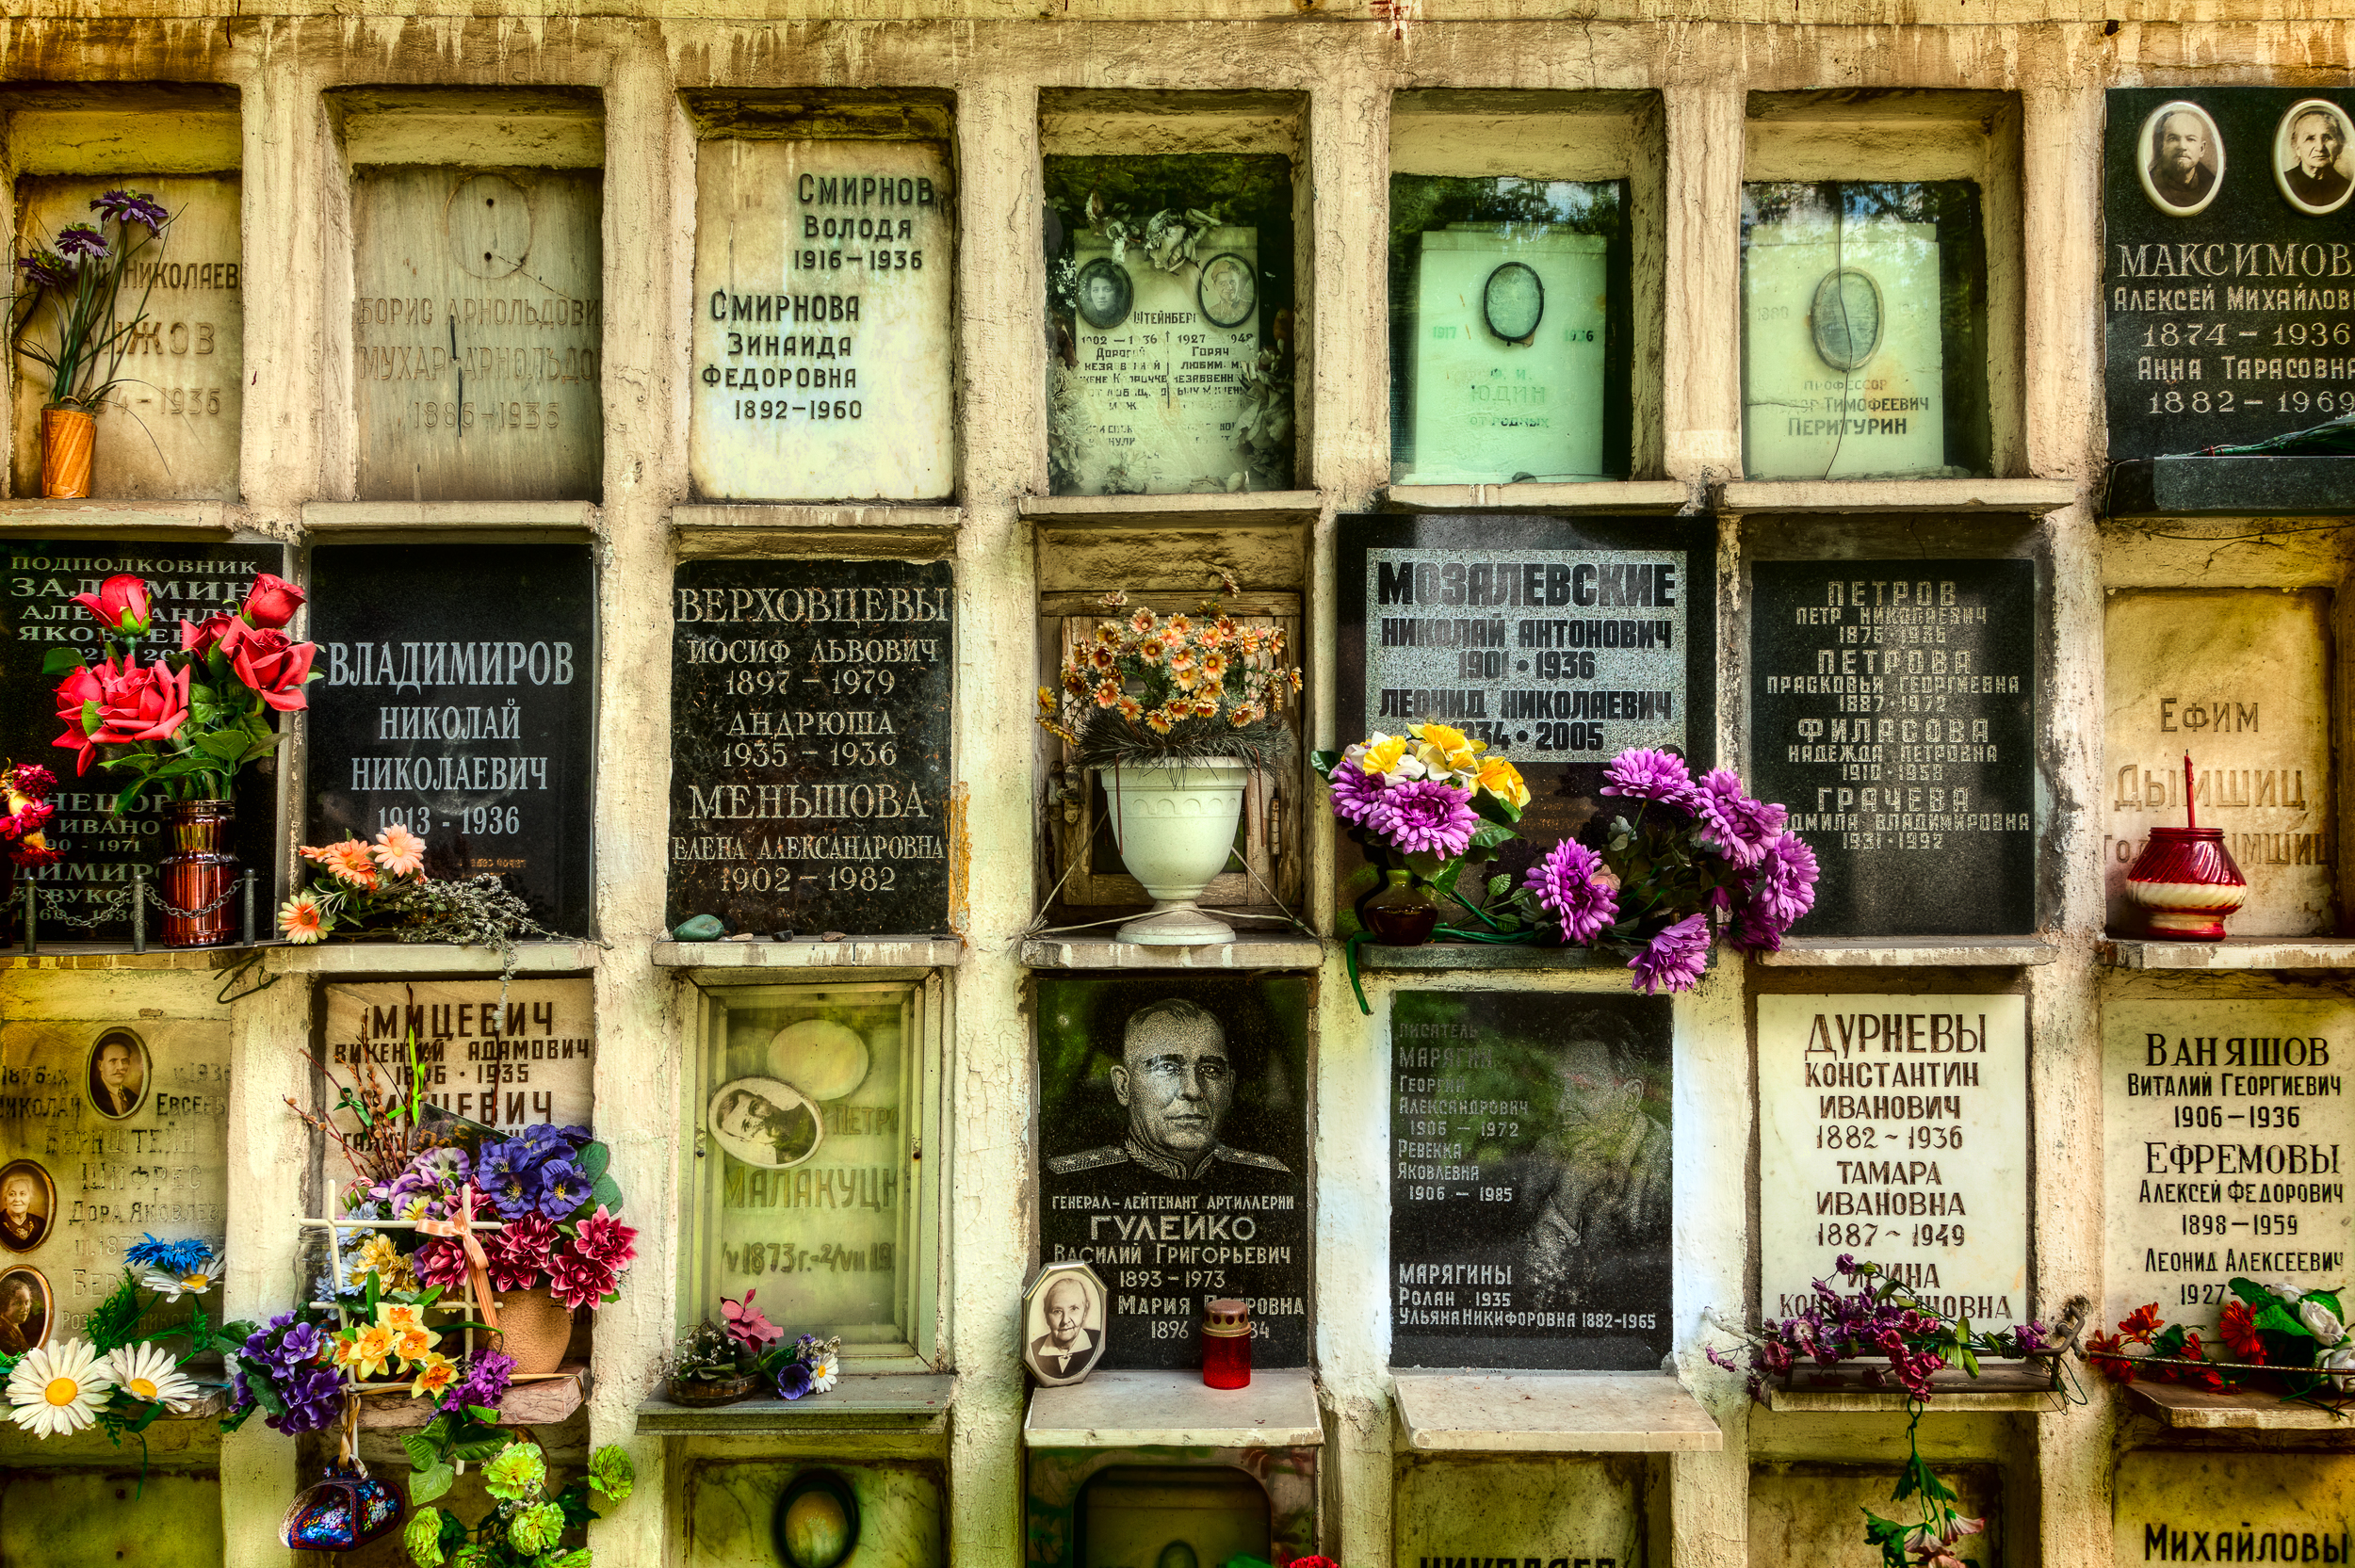 Tiny  niche's  holding  plaques and flowers  in the grounds of  Novodevichy Cemetery  in  Moscow, Russia .